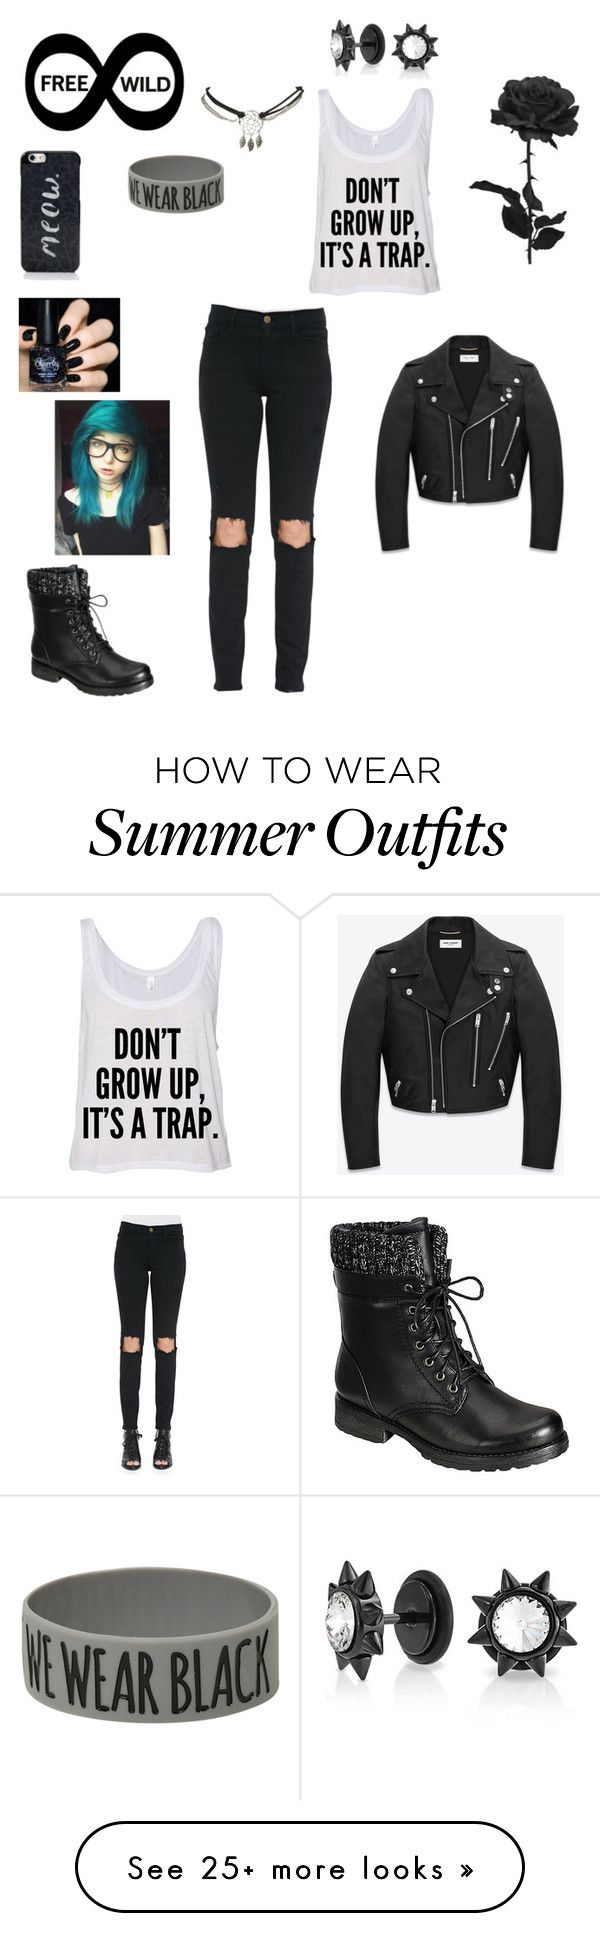 """""""We're the cool ones of society"""" by notyouraverageblonde13 on Polyvore featuring Yves Saint Laurent, Frame Denim, Wet Seal, Bling Jewelry and Kate Spade"""